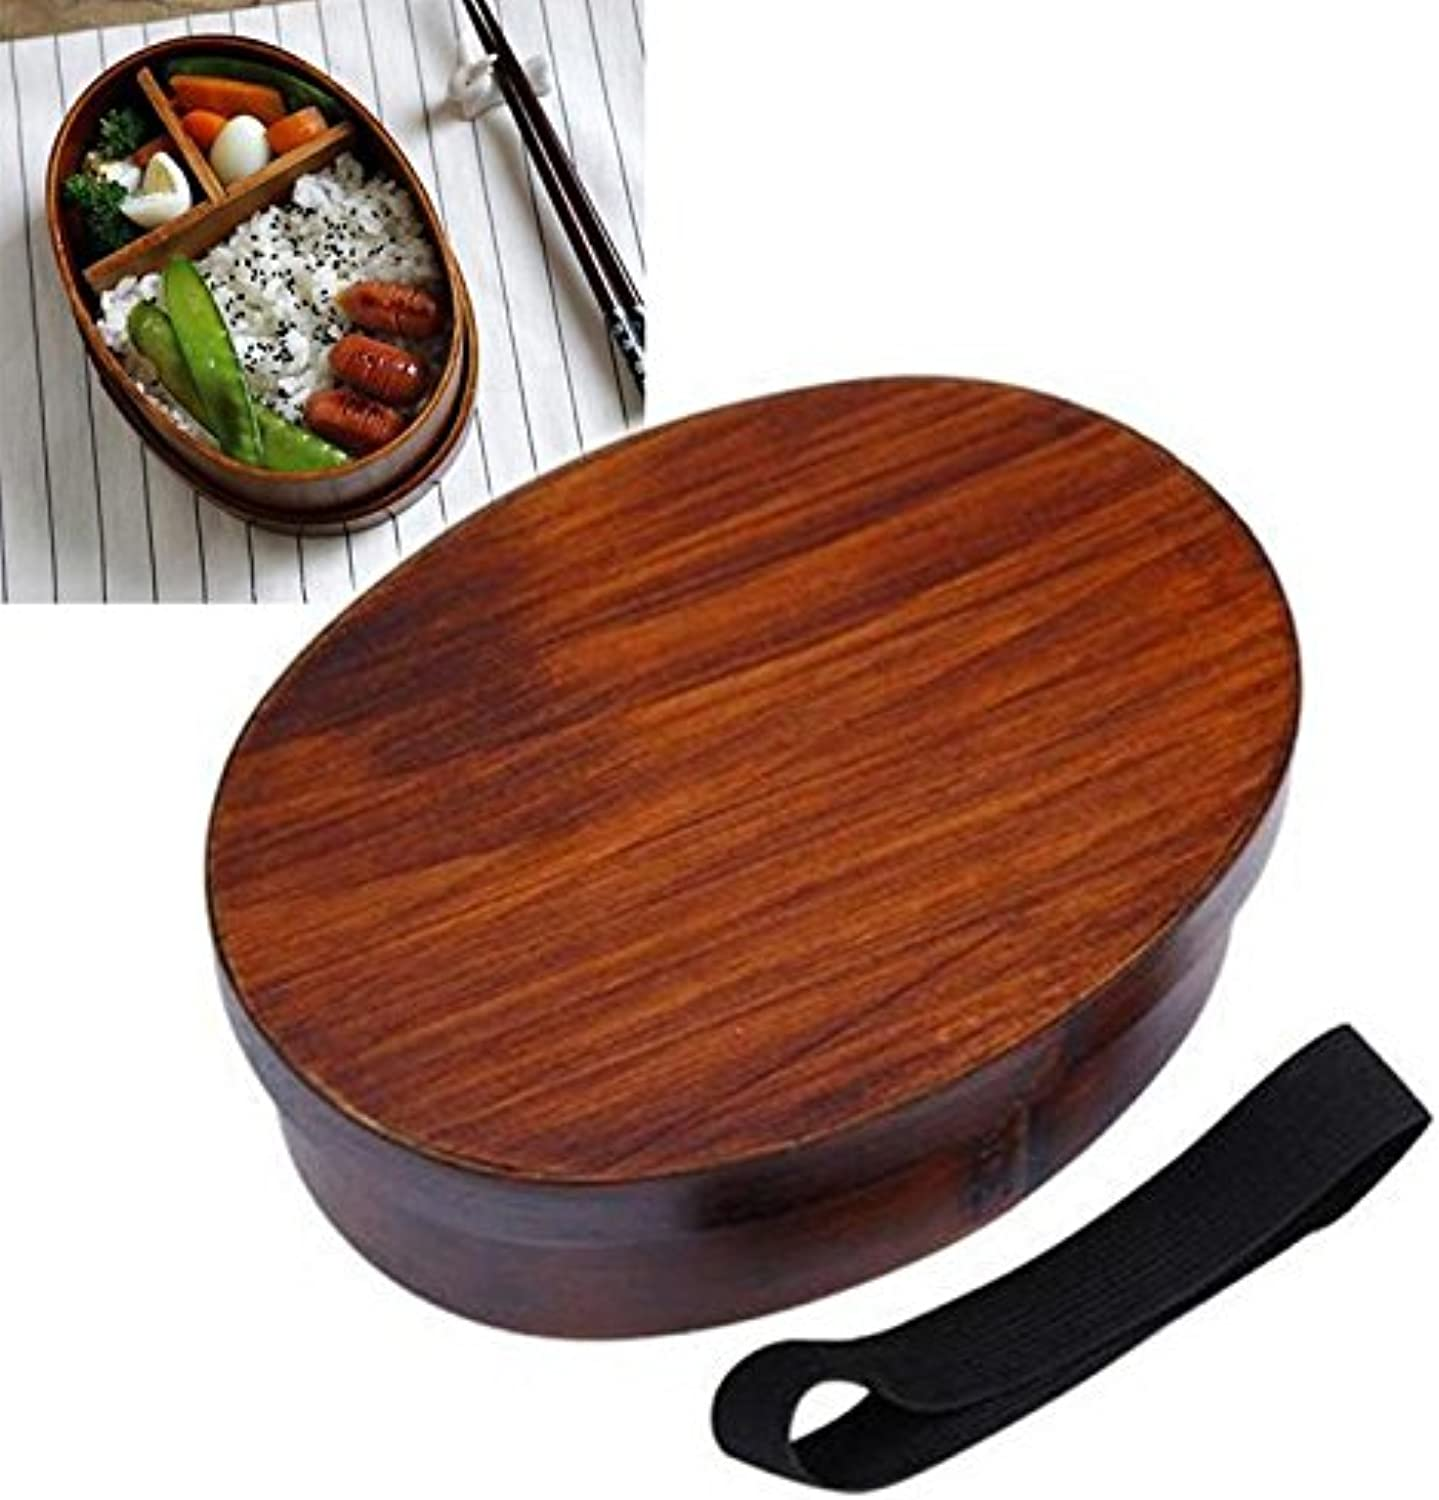 Japanese Style Bento Boxes Wood Lunchbox Handmade Wooden Sushi Tableware Bowl Food Container